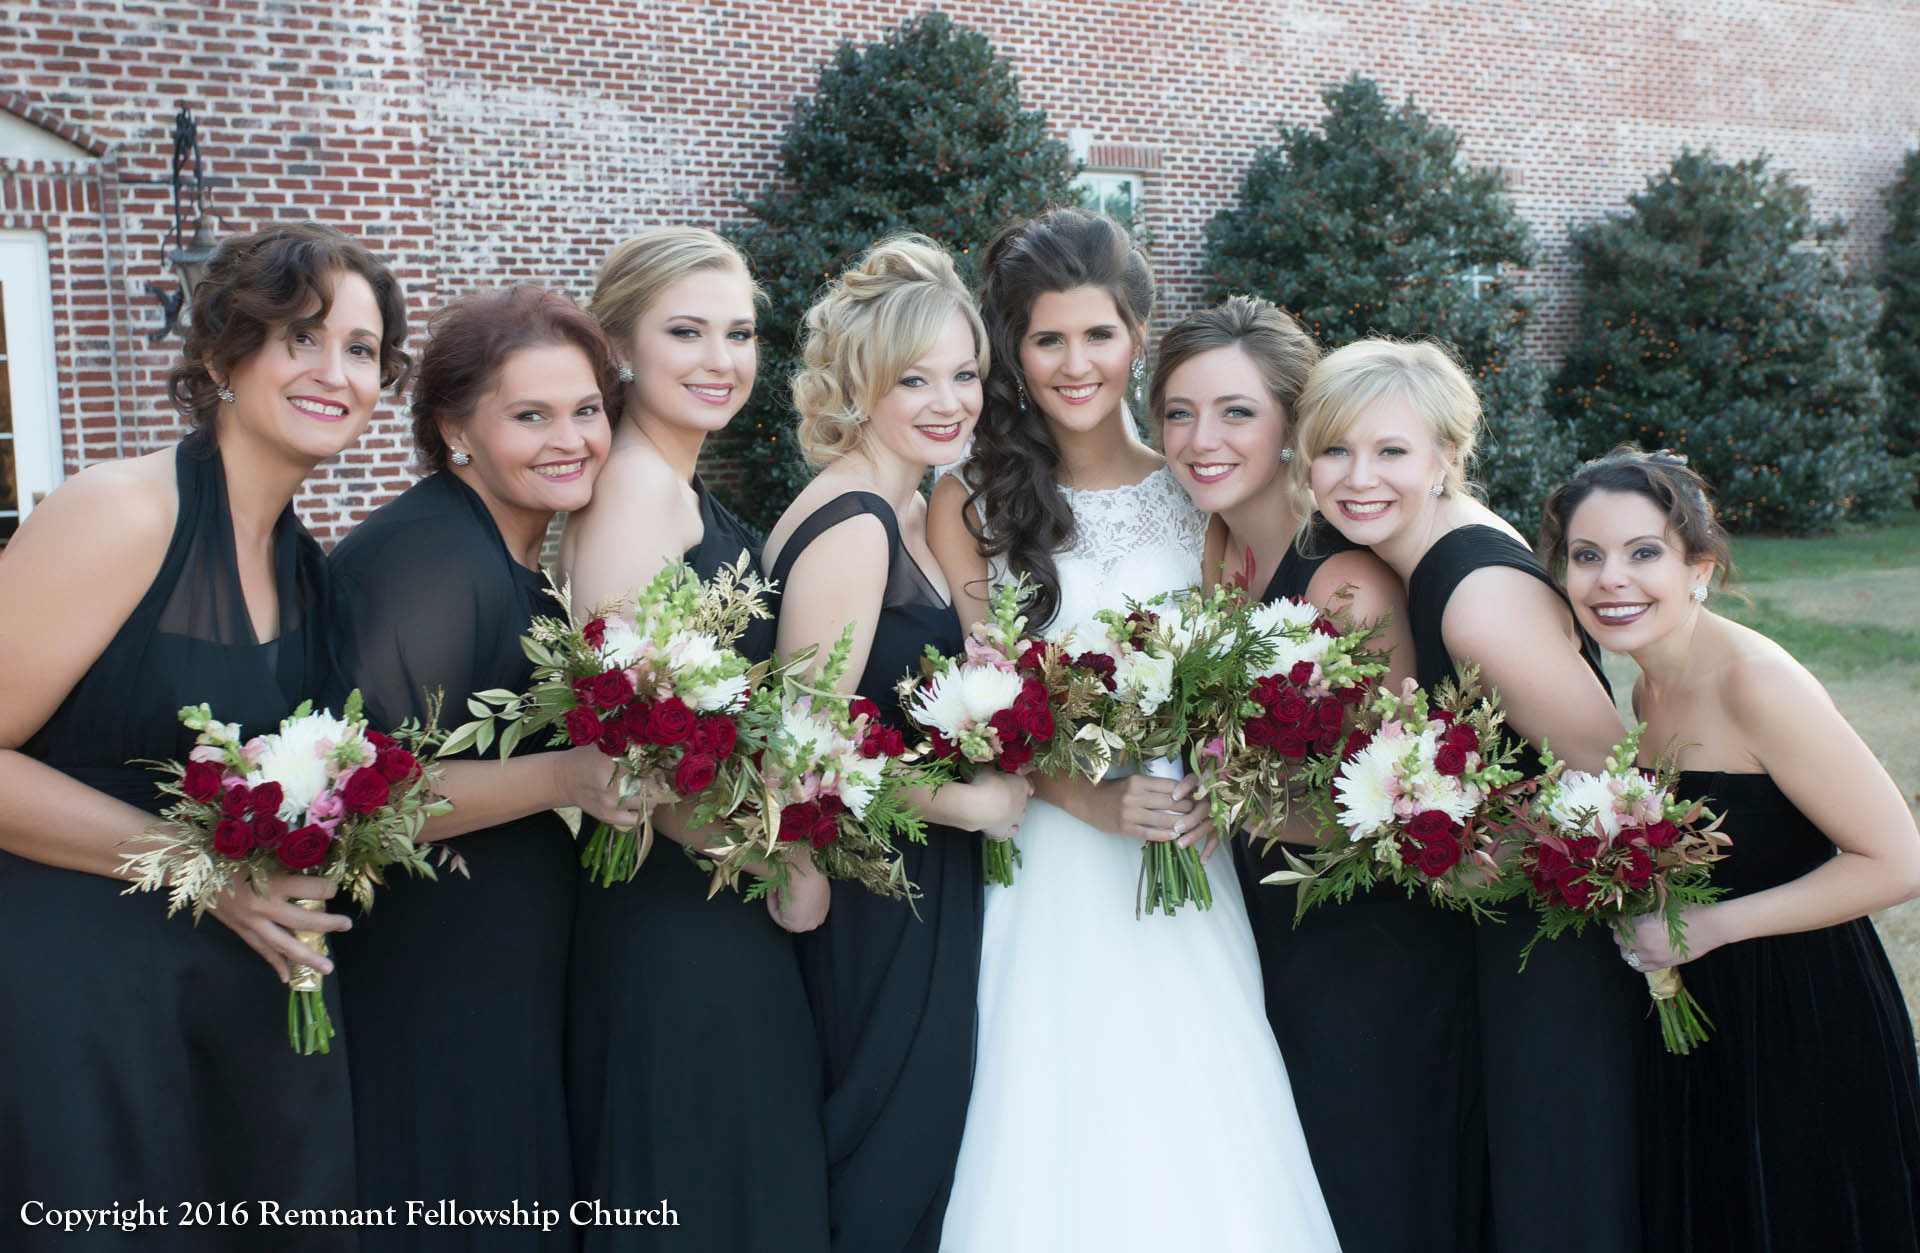 newdayIMG_4689-Remnant-Fellowship-Hagans-Wedding-Bride-PhotoShoot-Outside-Church-Brides-Maids2